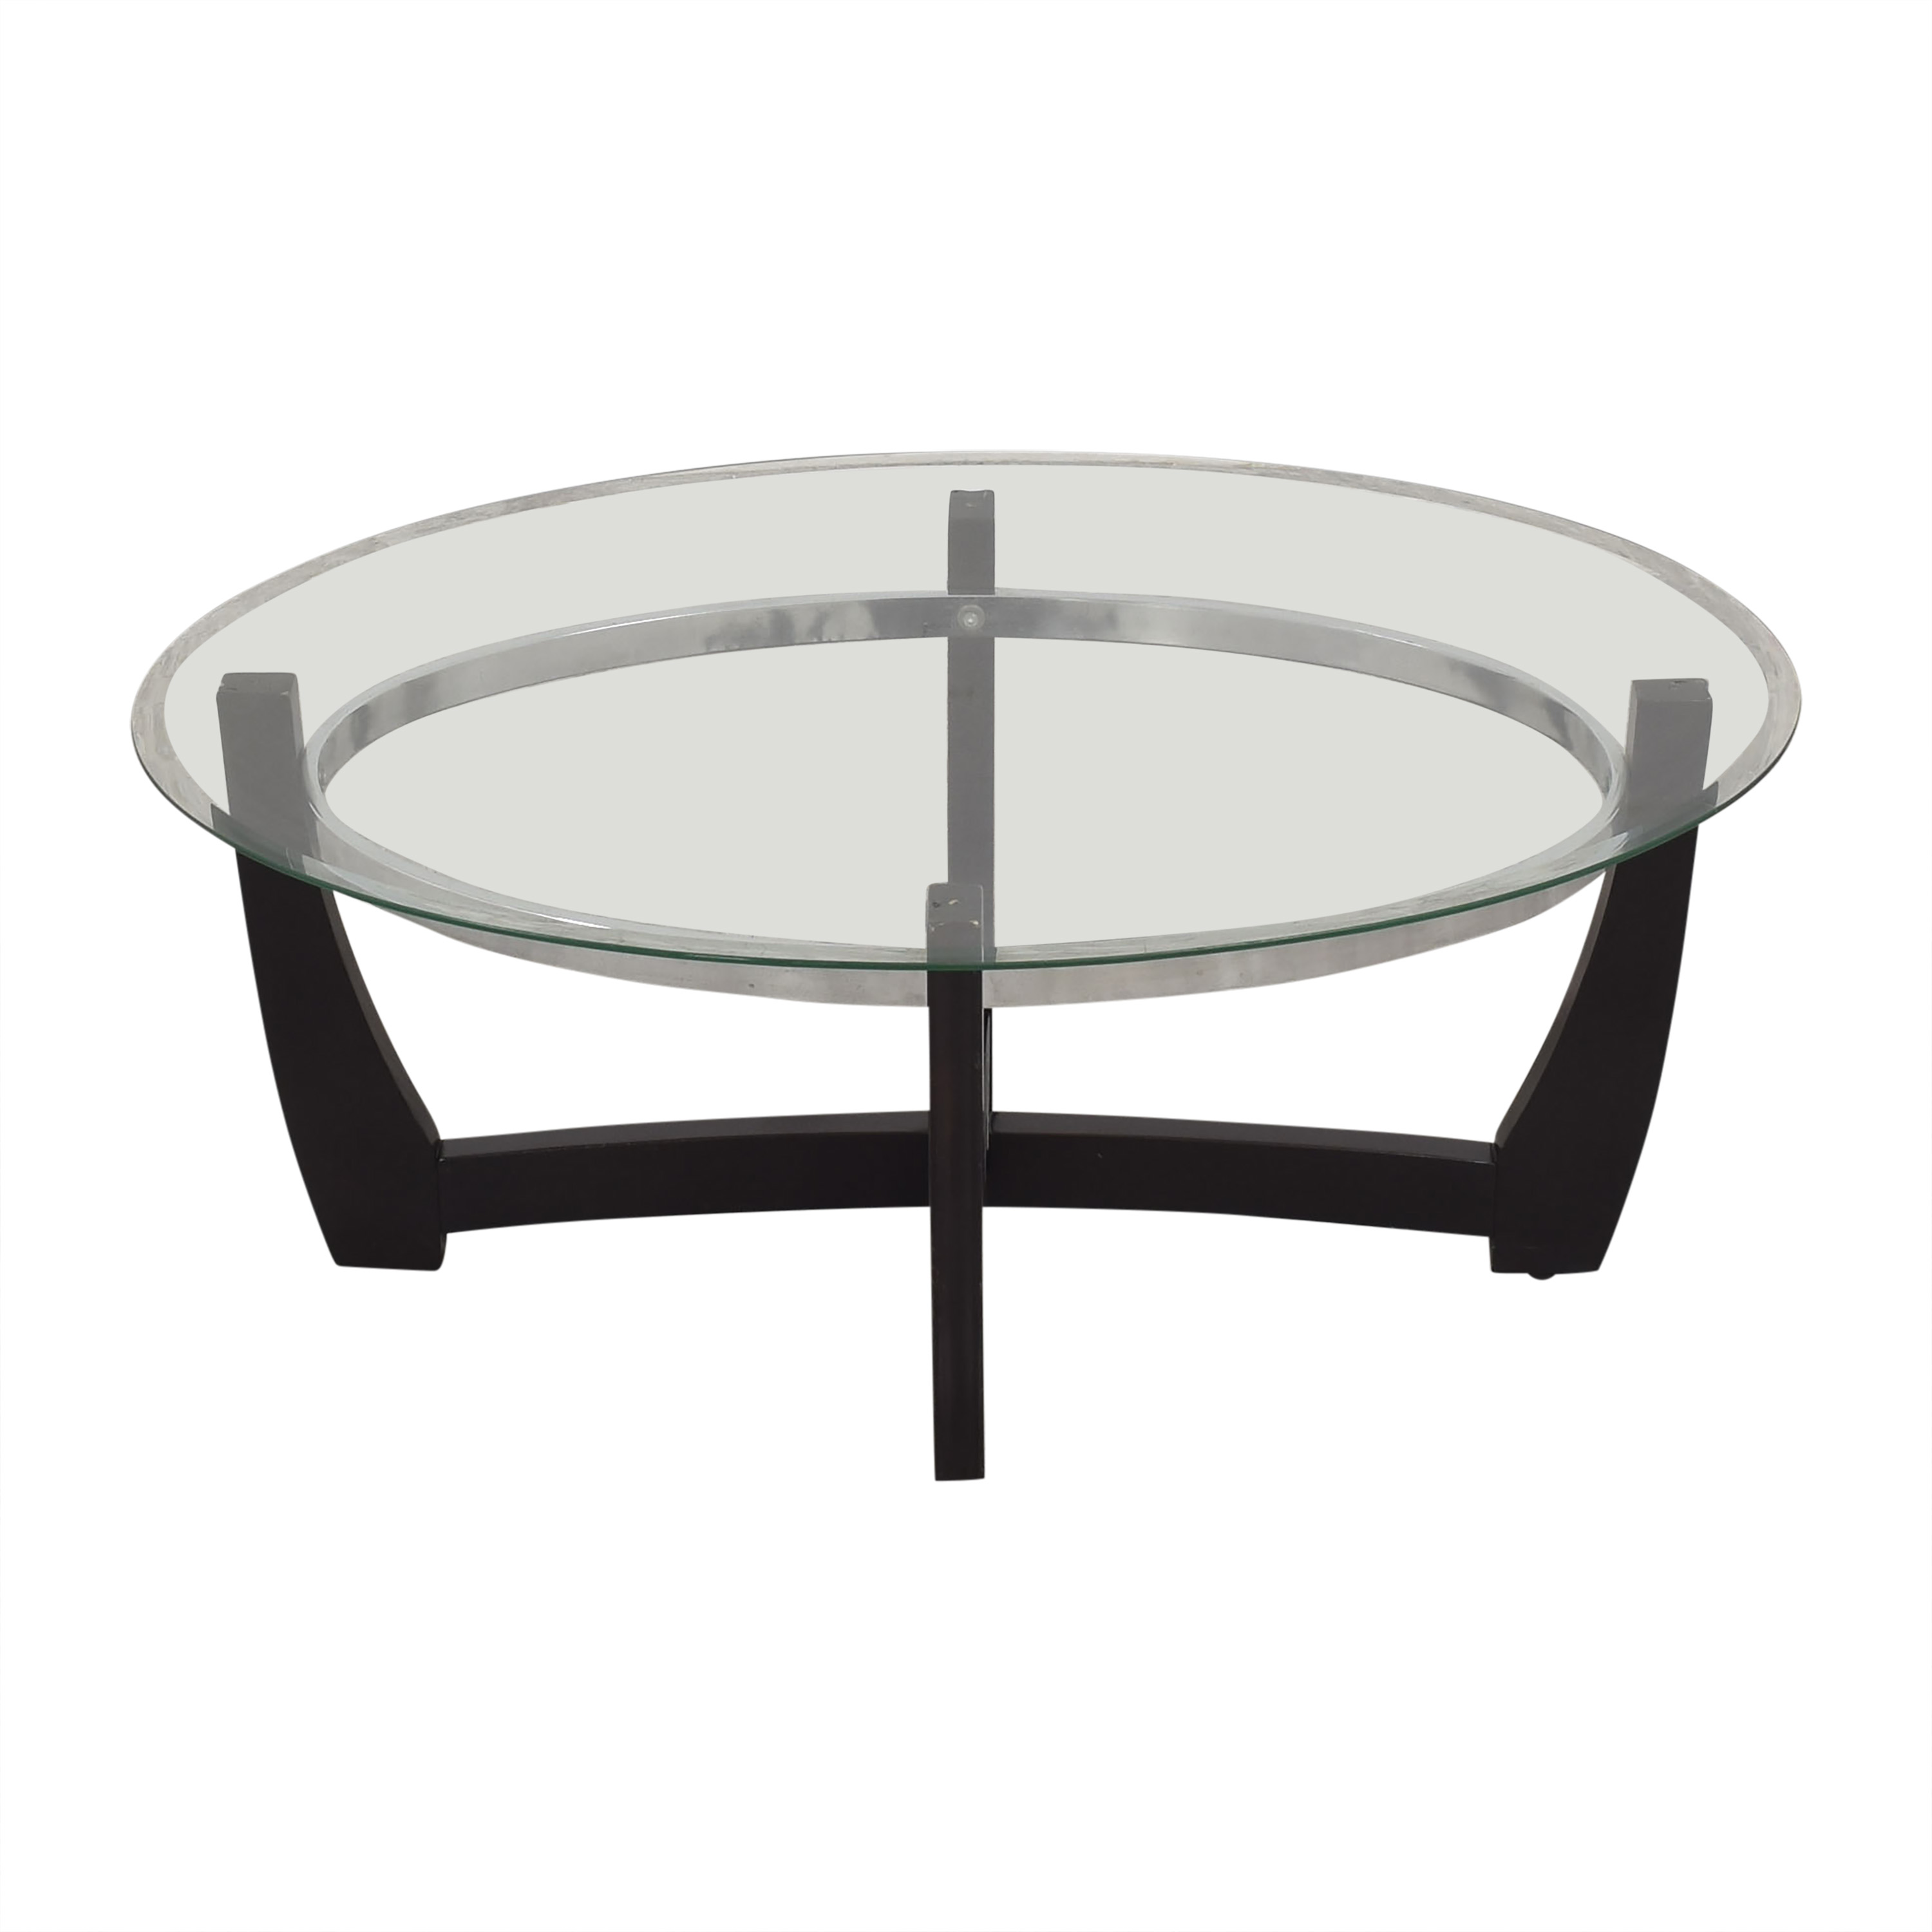 Macy's Macy's Modern Coffee Table with Transparent Surface Coffee Tables